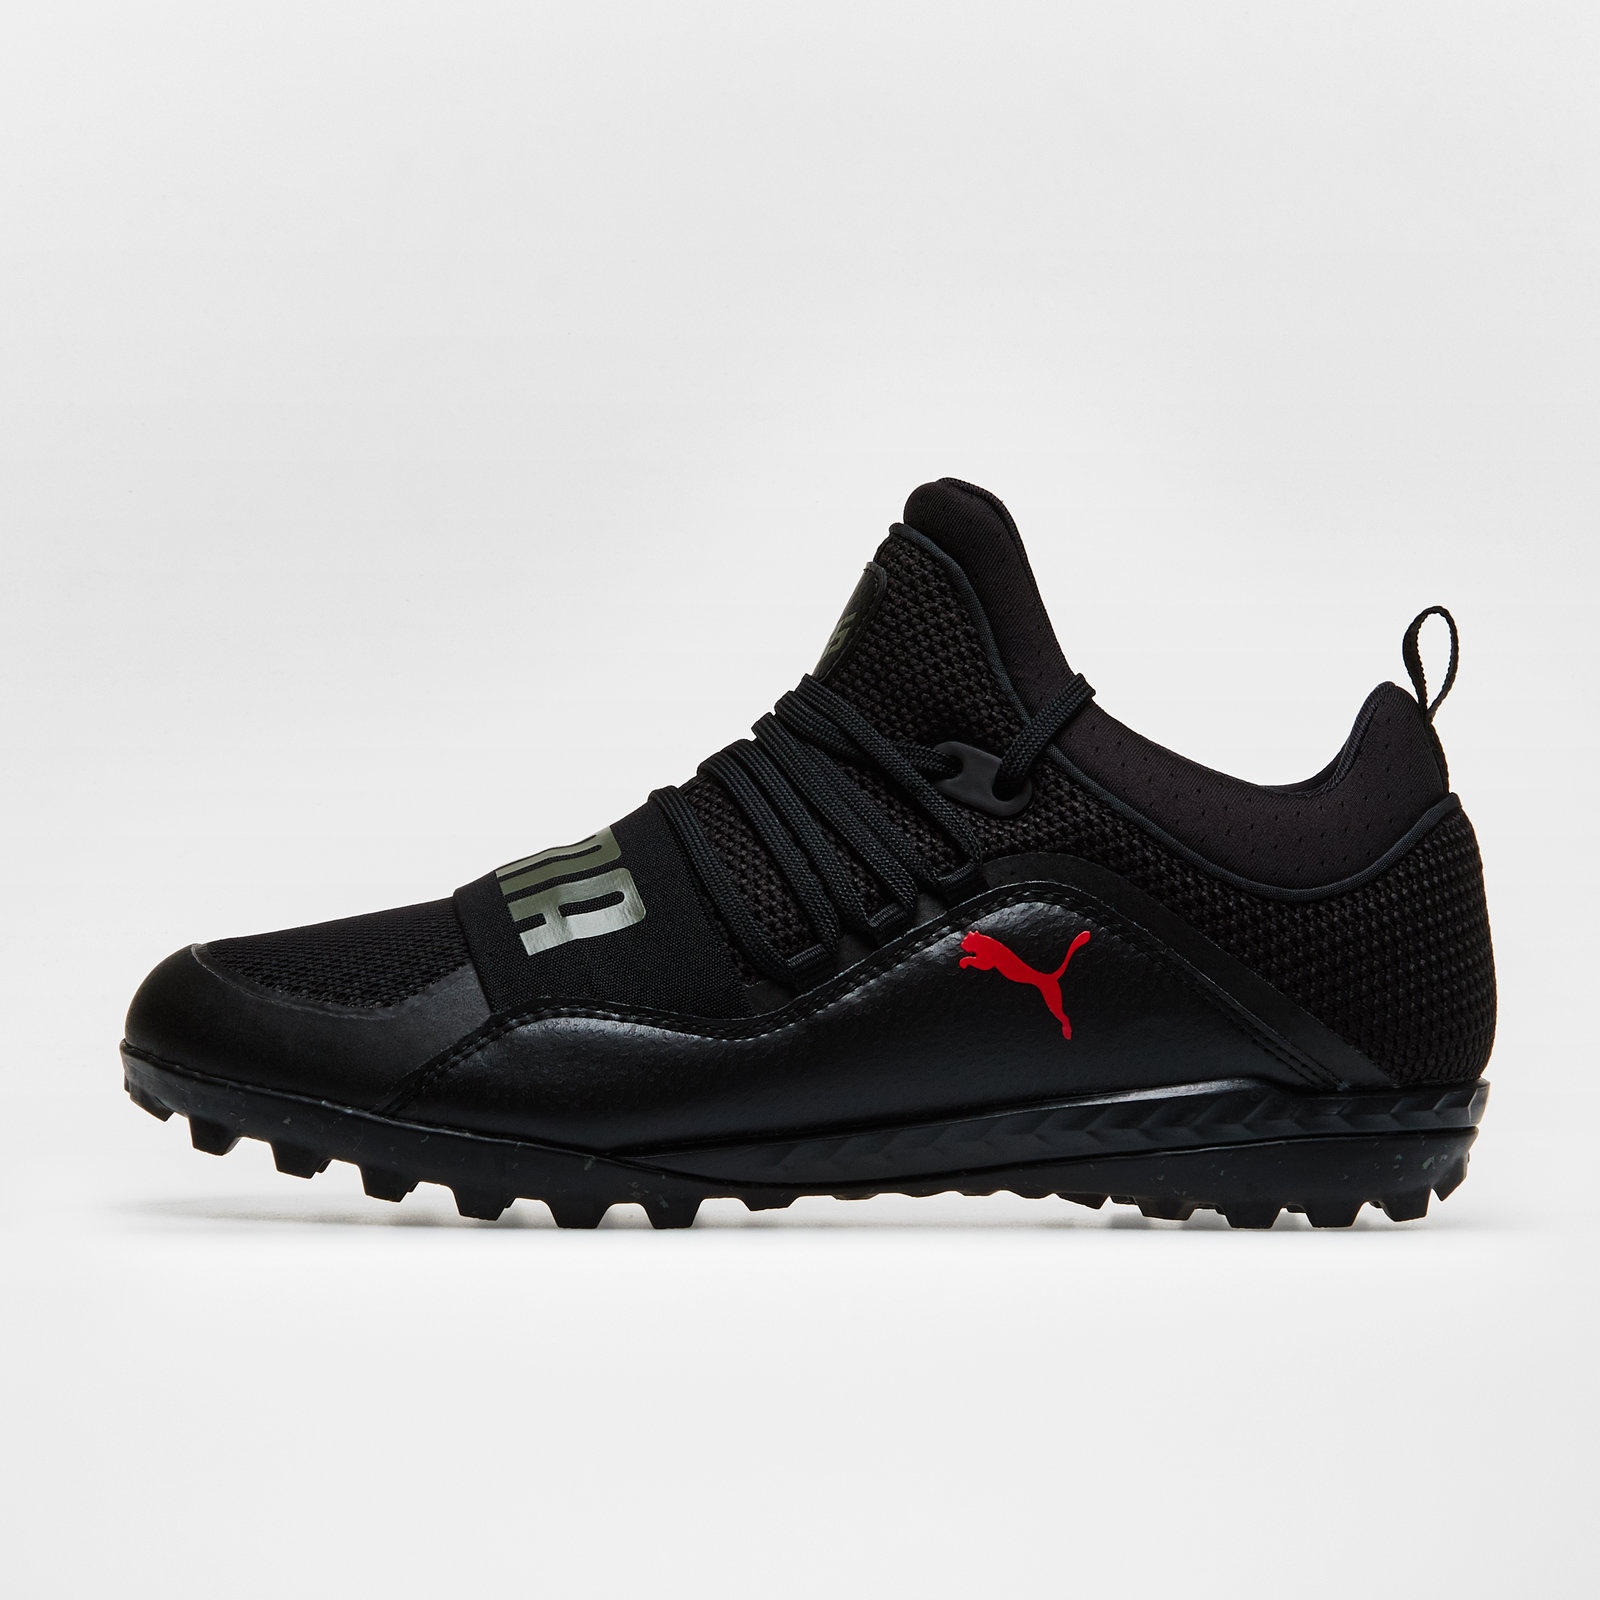 Image of 365.18 Ignite ST Football Trainers